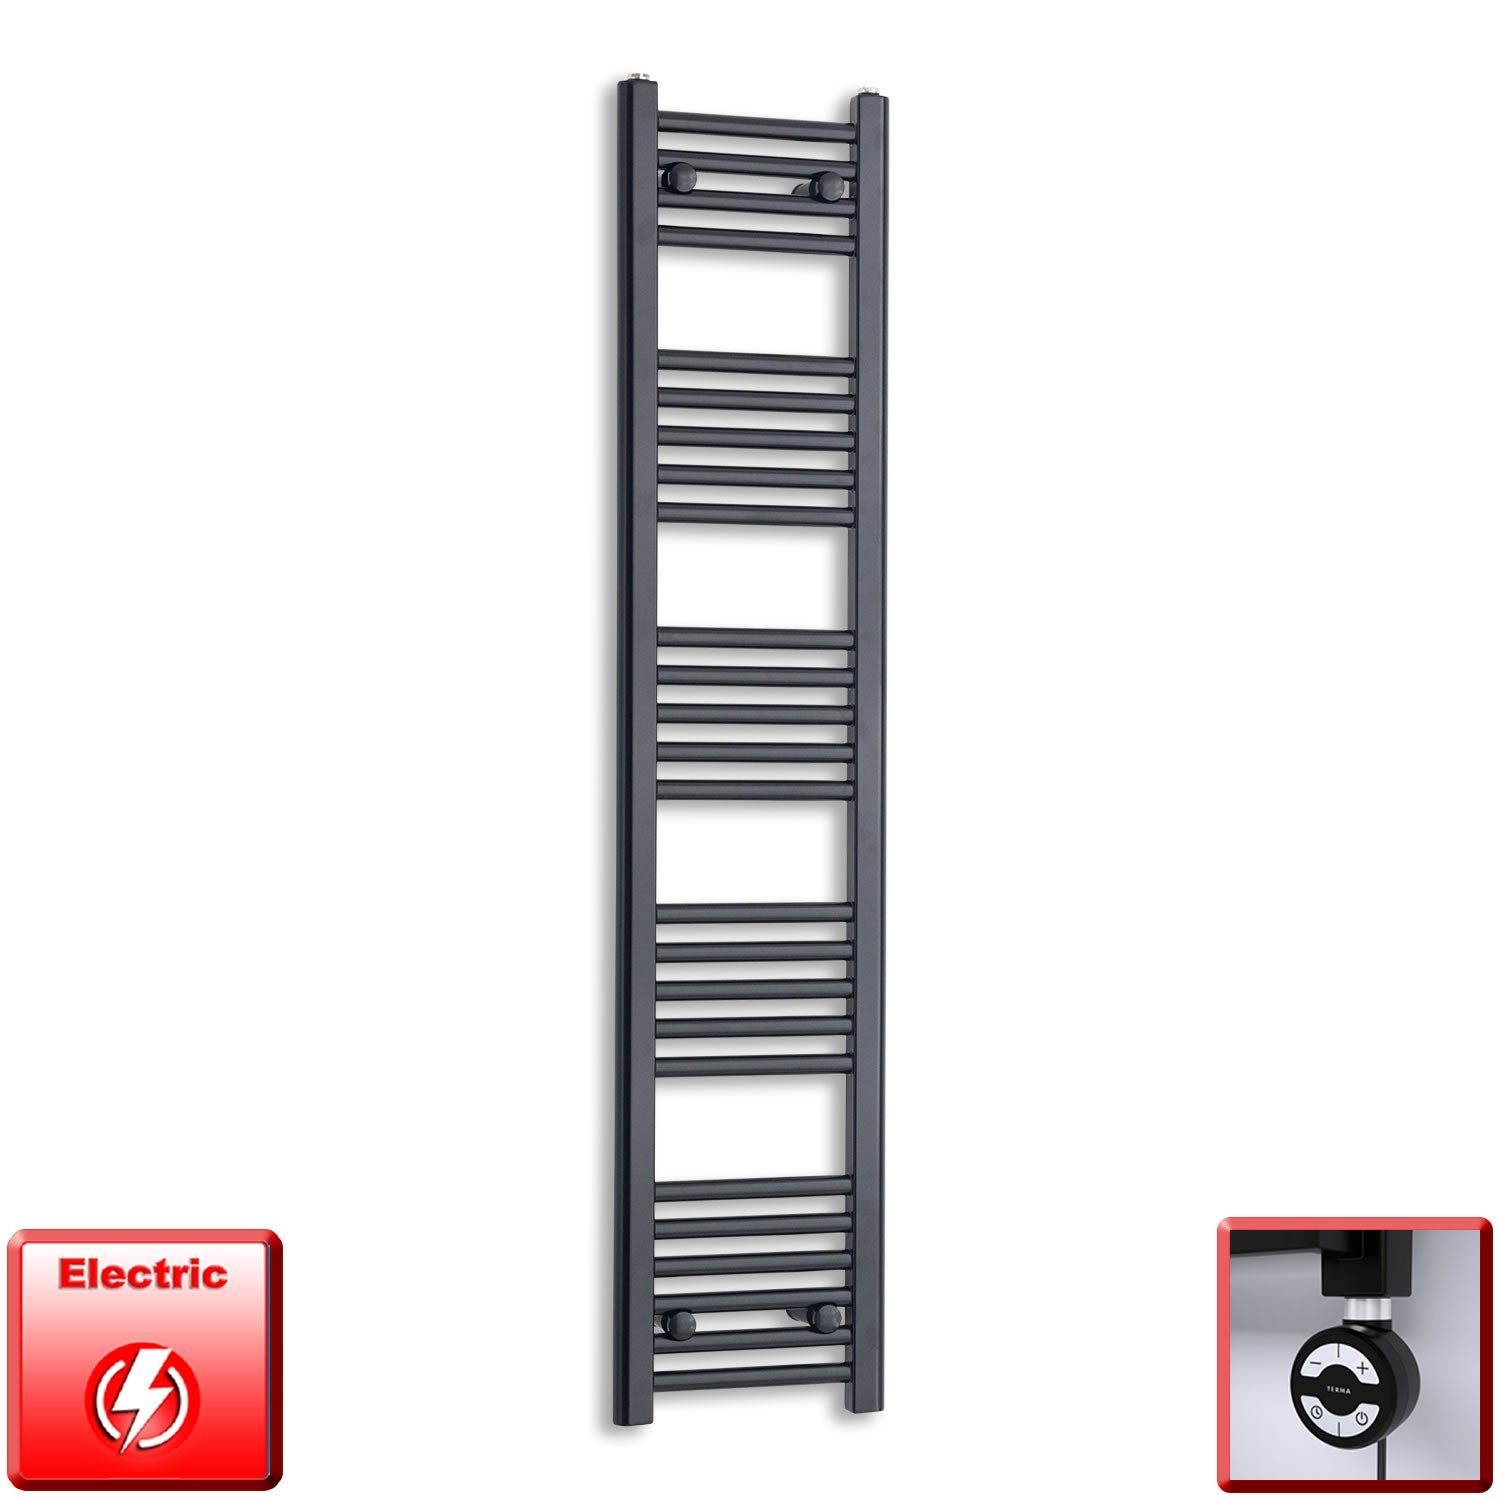 300mm Wide 1400mm High Pre-Filled Black Electric Towel Rail Radiator With Thermostatic MOA Element